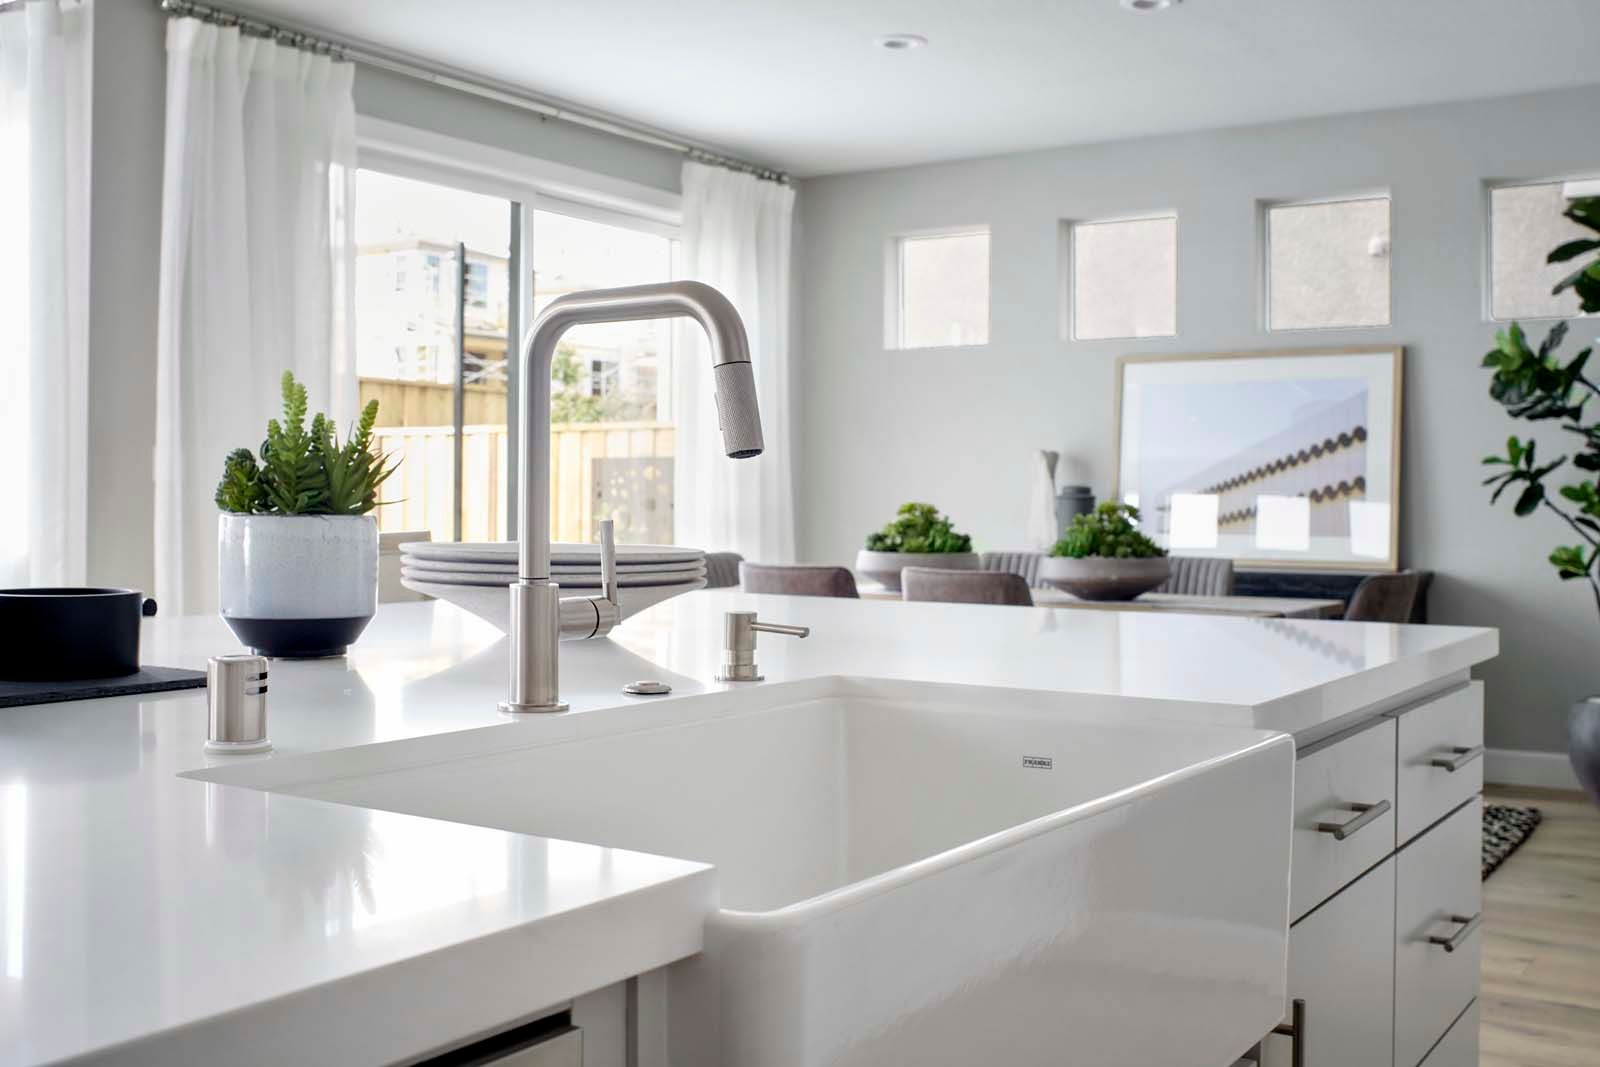 Kitchen featured in the Residence 2 By Brookfield Residential  in Oakland-Alameda, CA